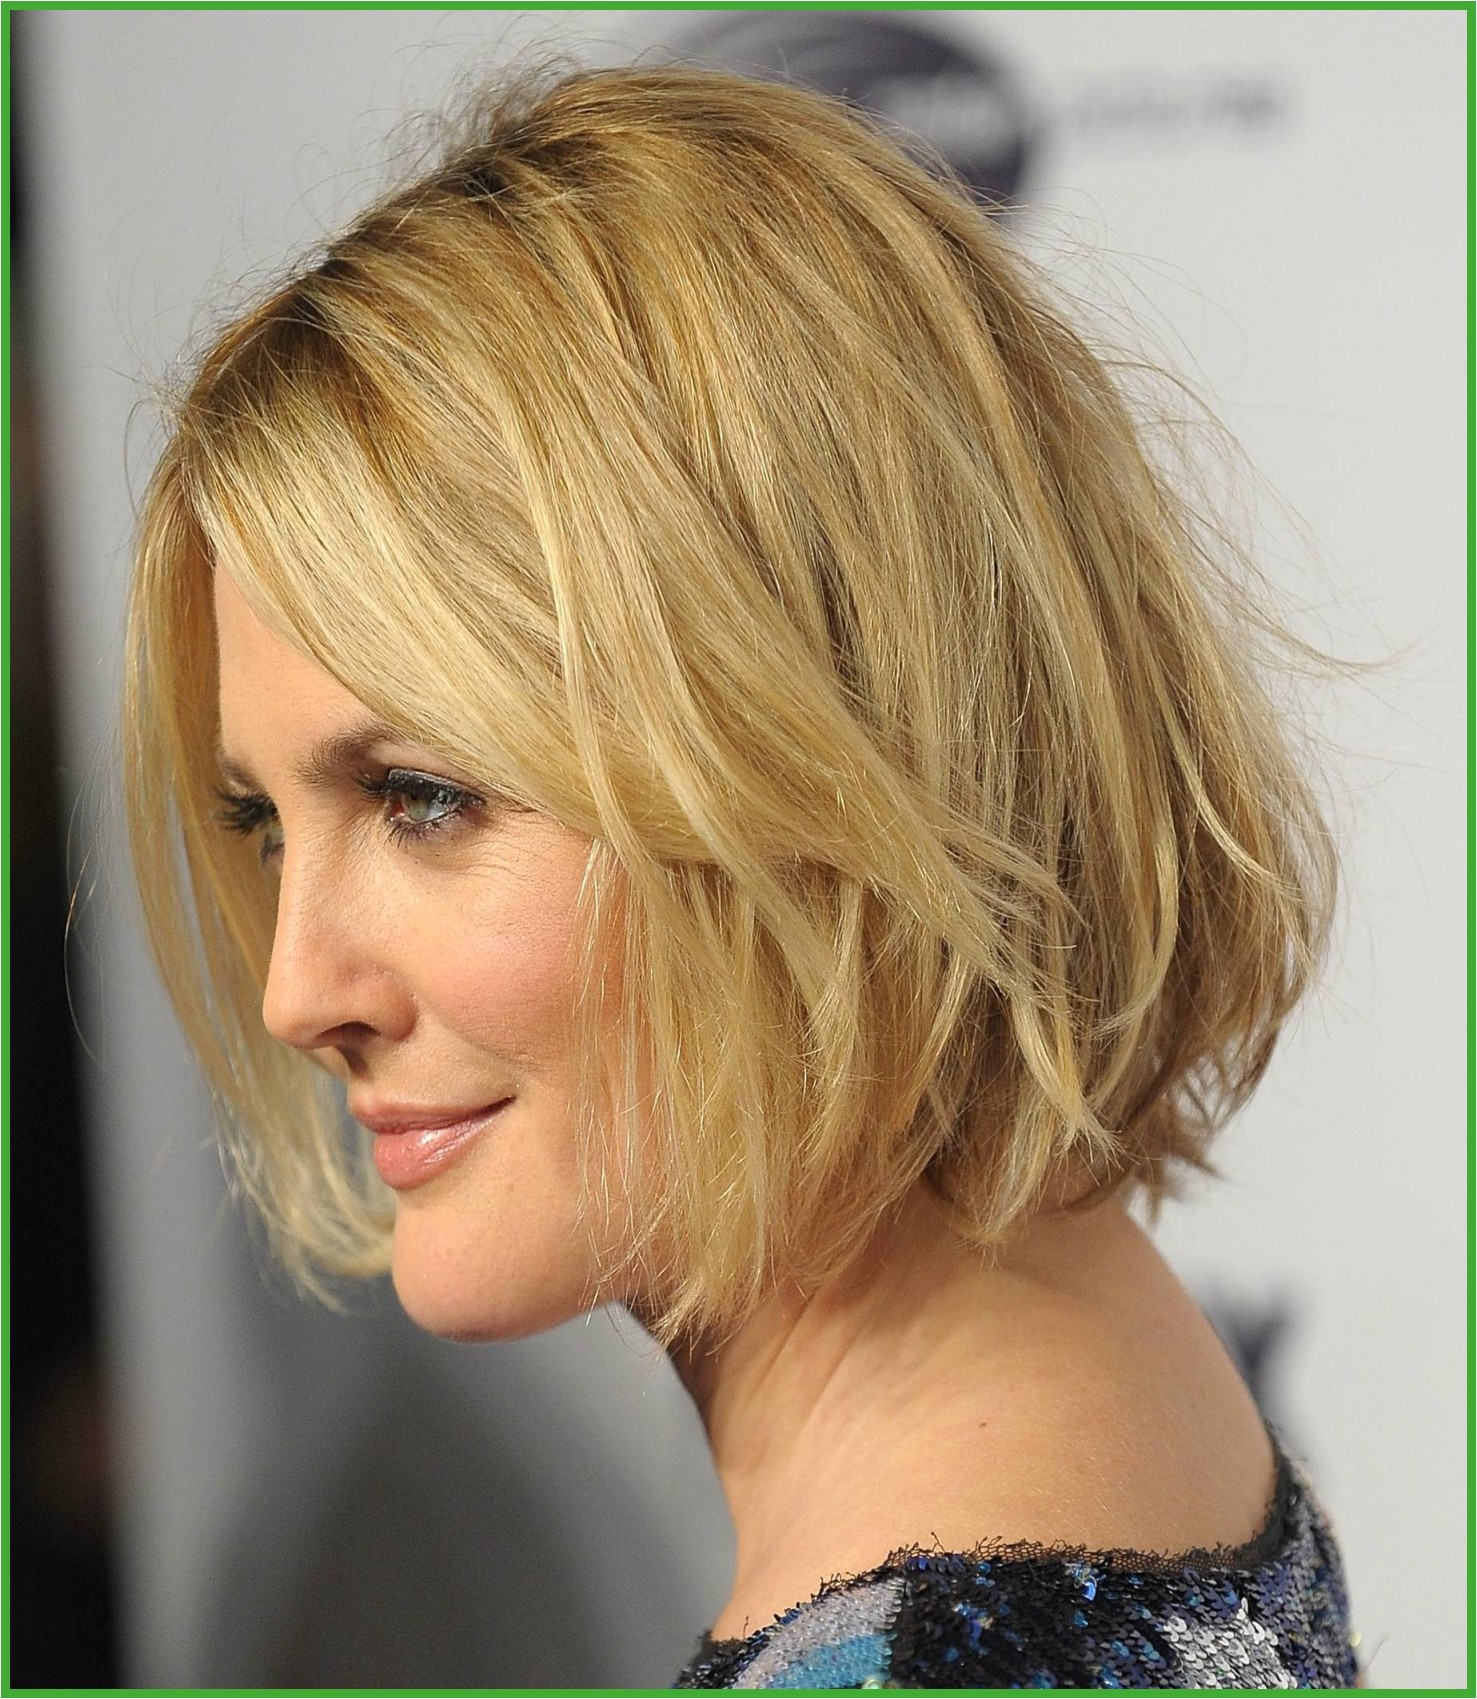 Elegant Curly Hairstyles Very Curly Hairstyles Fresh Curly Hair 0d Archives Hair Style